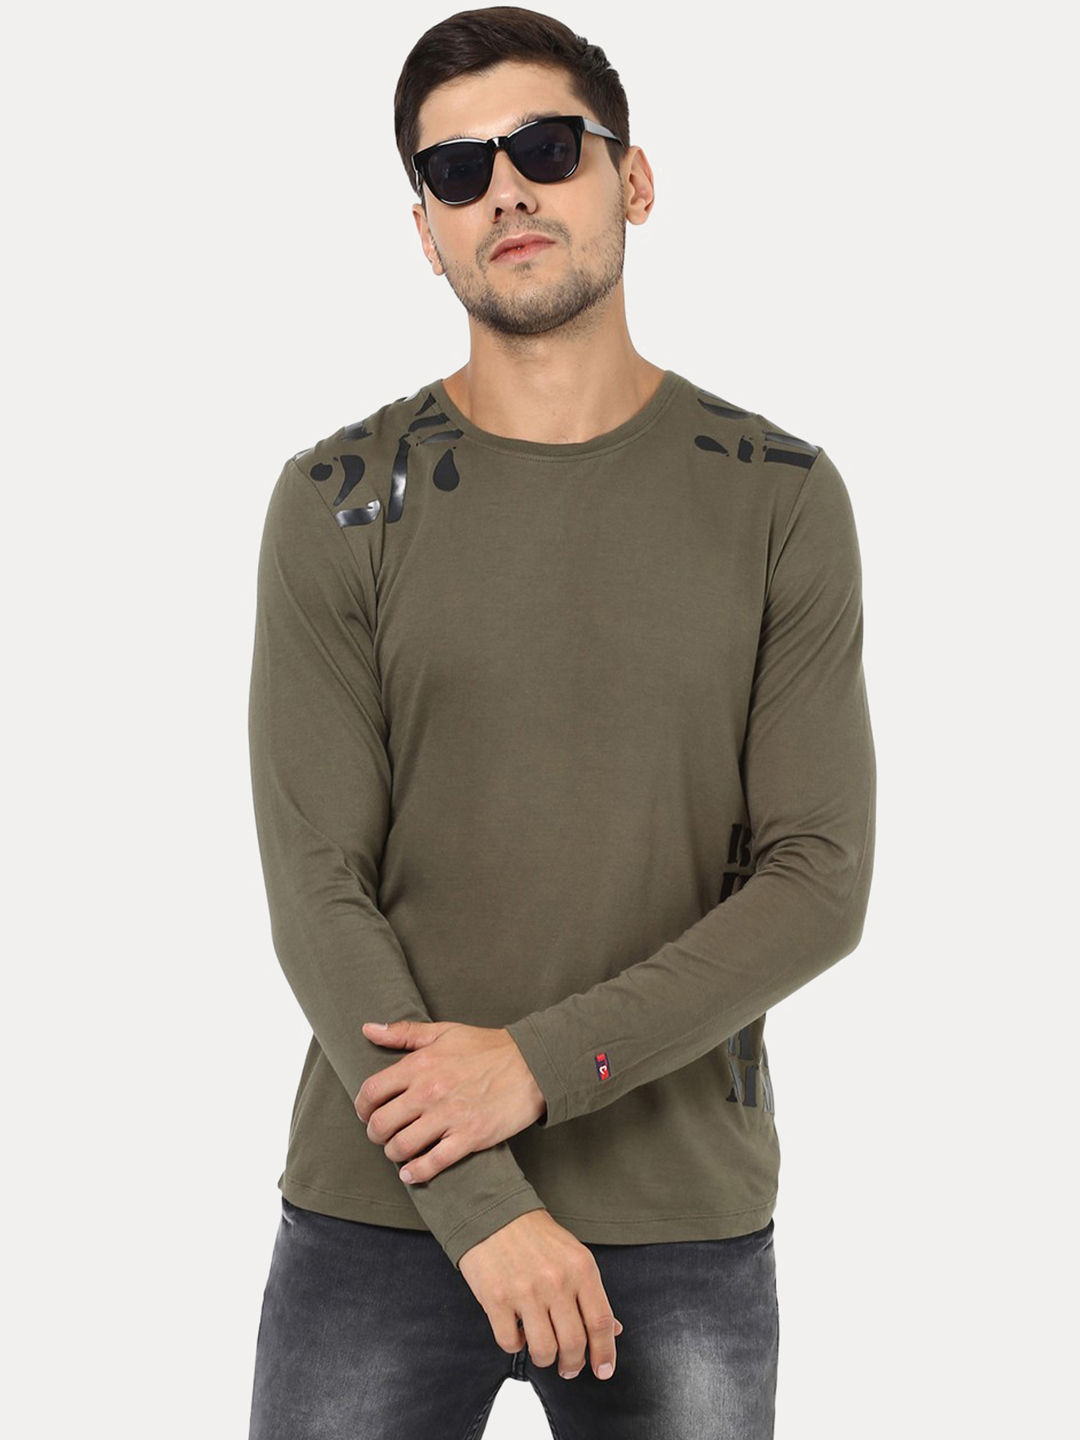 ARMY GREEN SOLID T-SHIRT